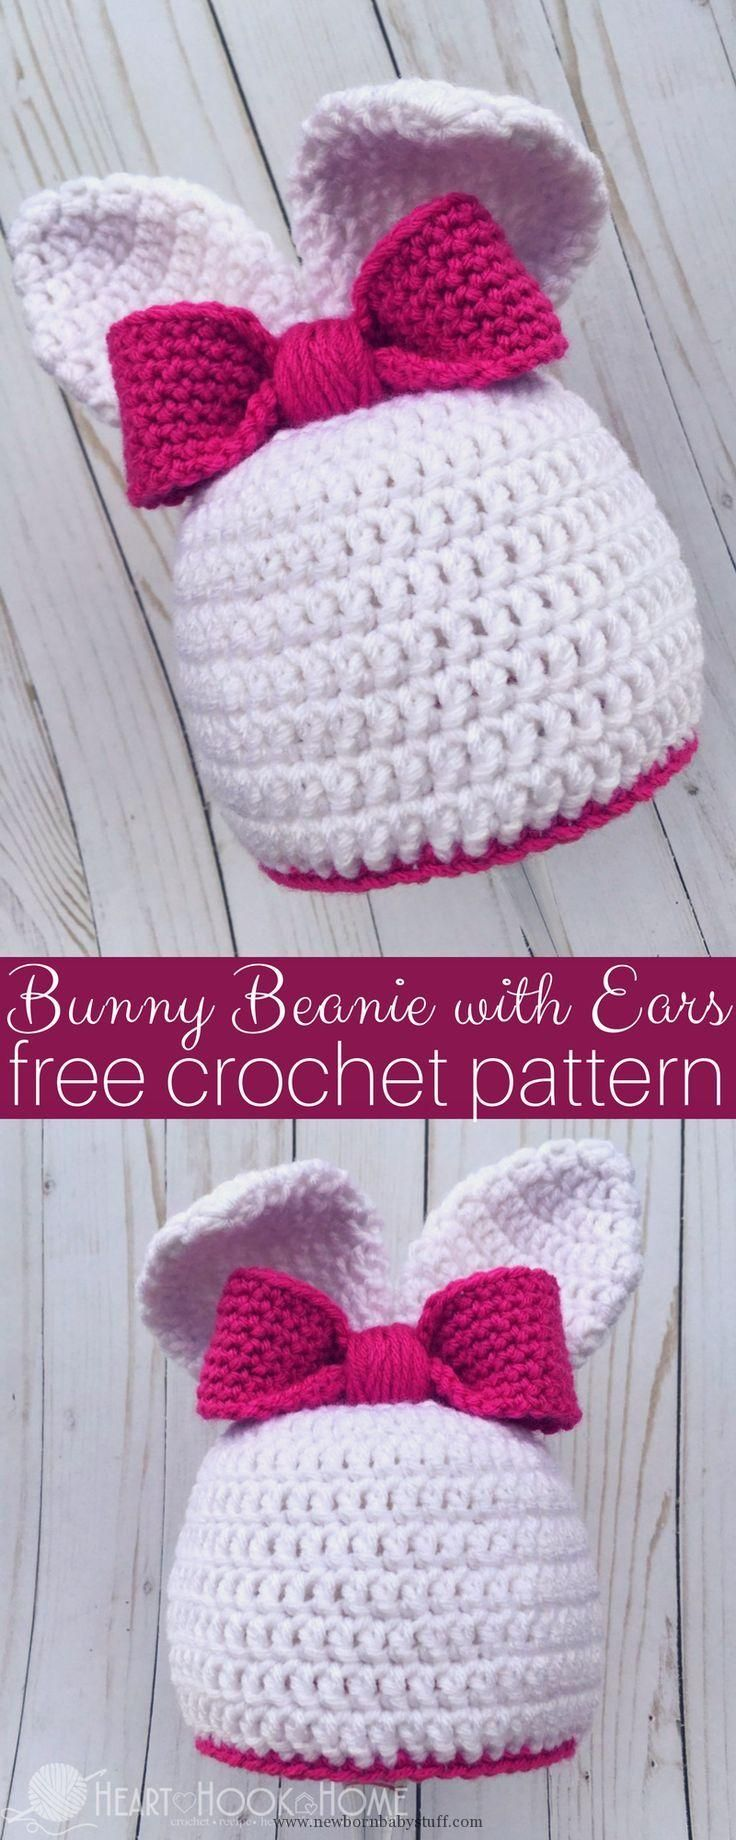 Baby Knitting Patterns Bunny Hat With Ears Free Crochet Pattern...